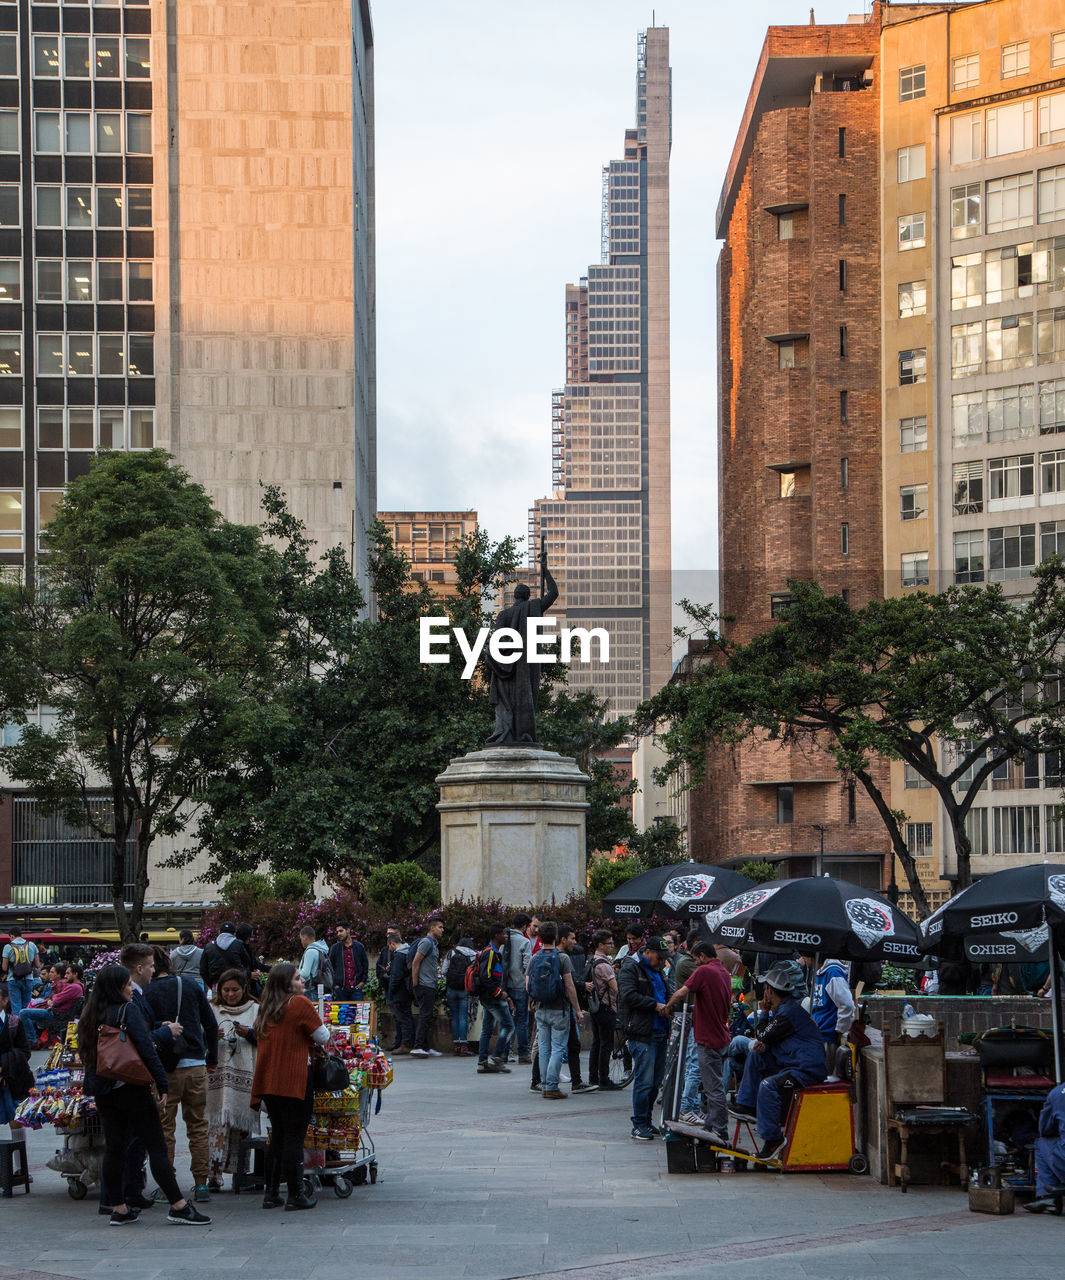 architecture, city, building exterior, group of people, built structure, real people, street, large group of people, men, crowd, city life, statue, transportation, mode of transportation, building, sculpture, women, day, tree, office building exterior, outdoors, skyscraper